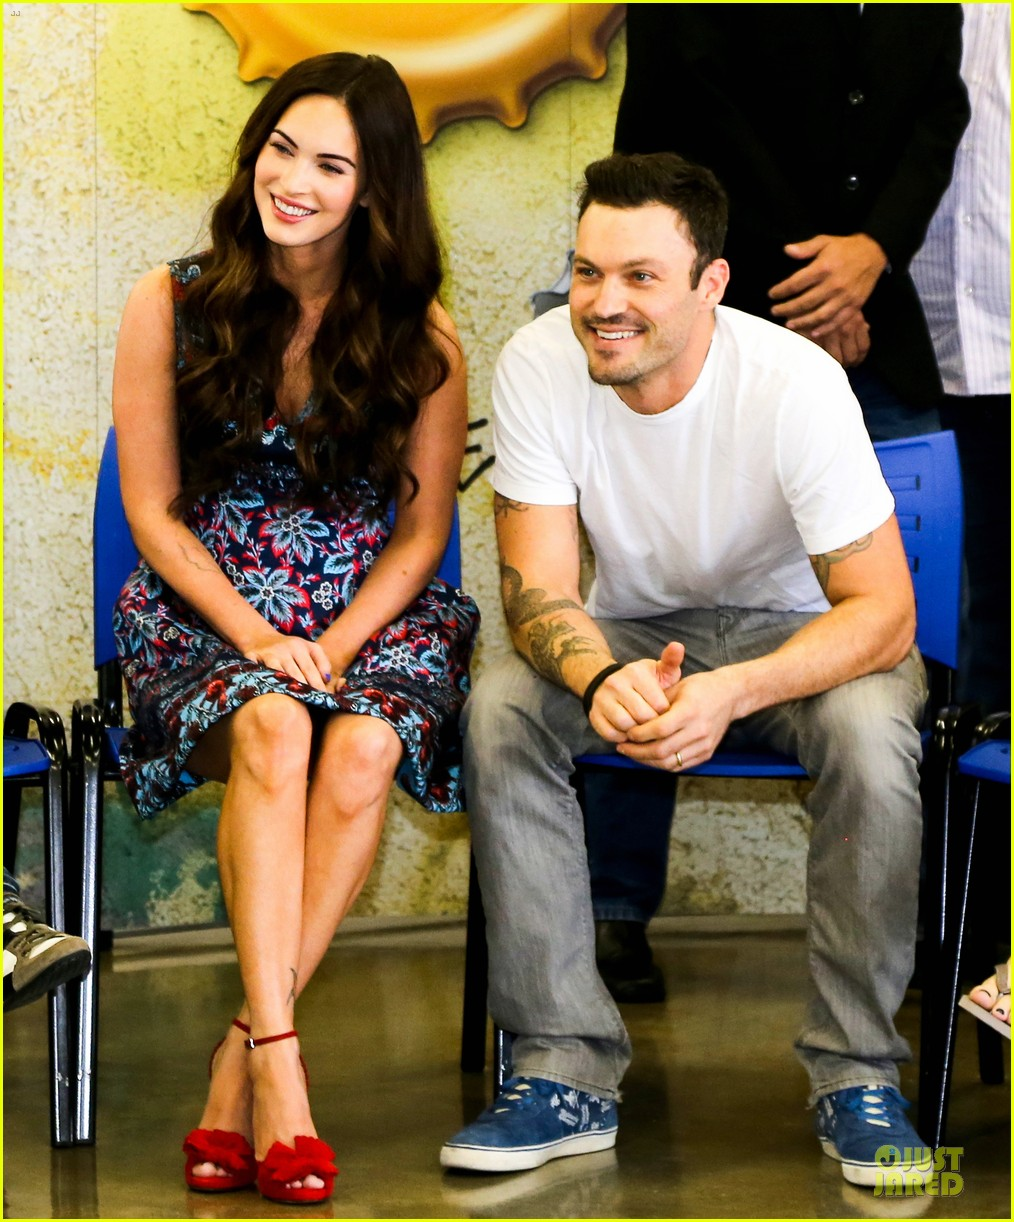 megan fox brian austin green brazilian dance spectators 192808150